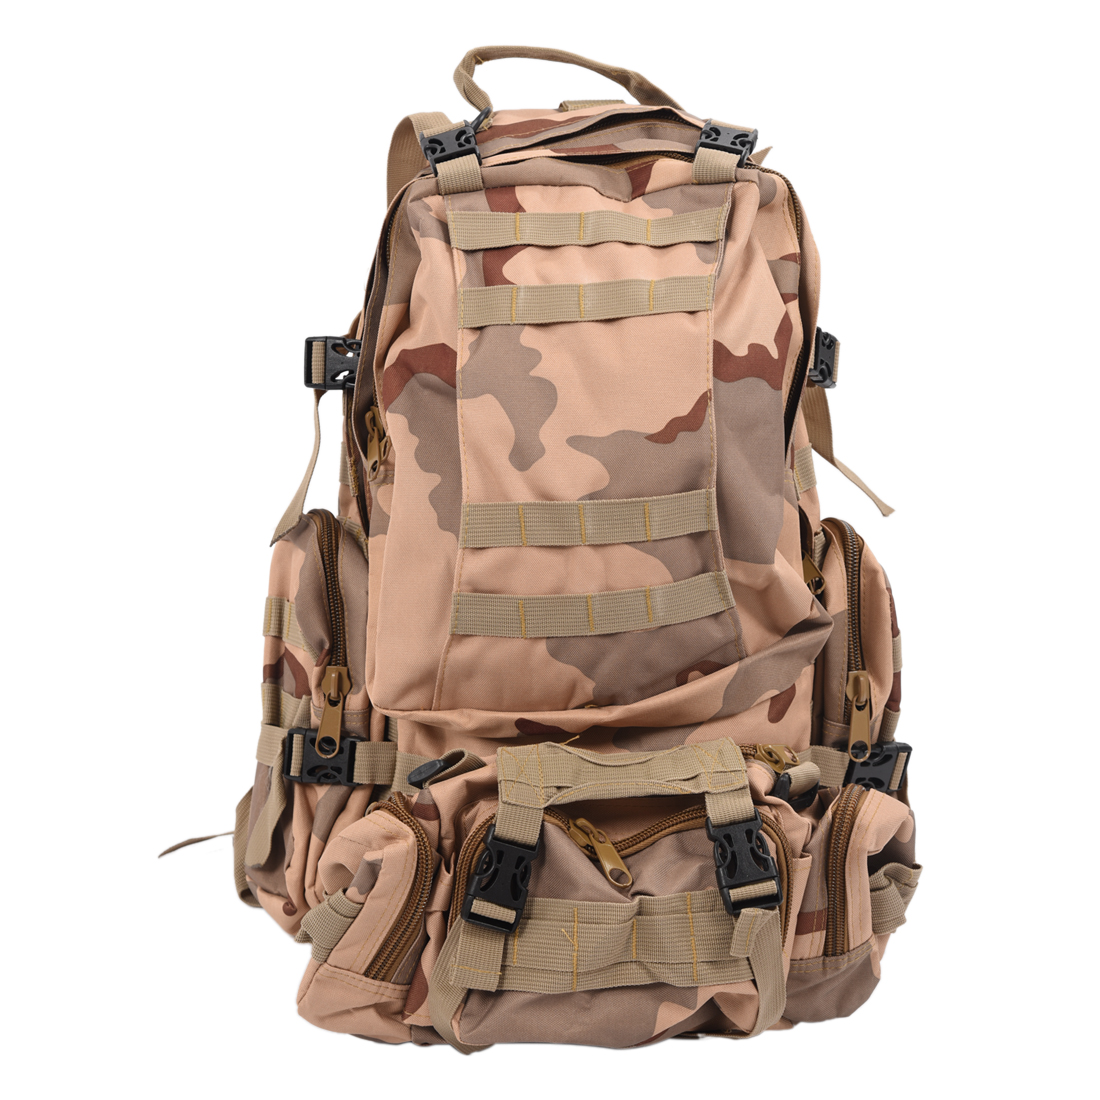 50L Large Capacity Tactical Military Outdoor Rucksacks Backpack Trekking Hiking Bag Three sand camouflage стоимость